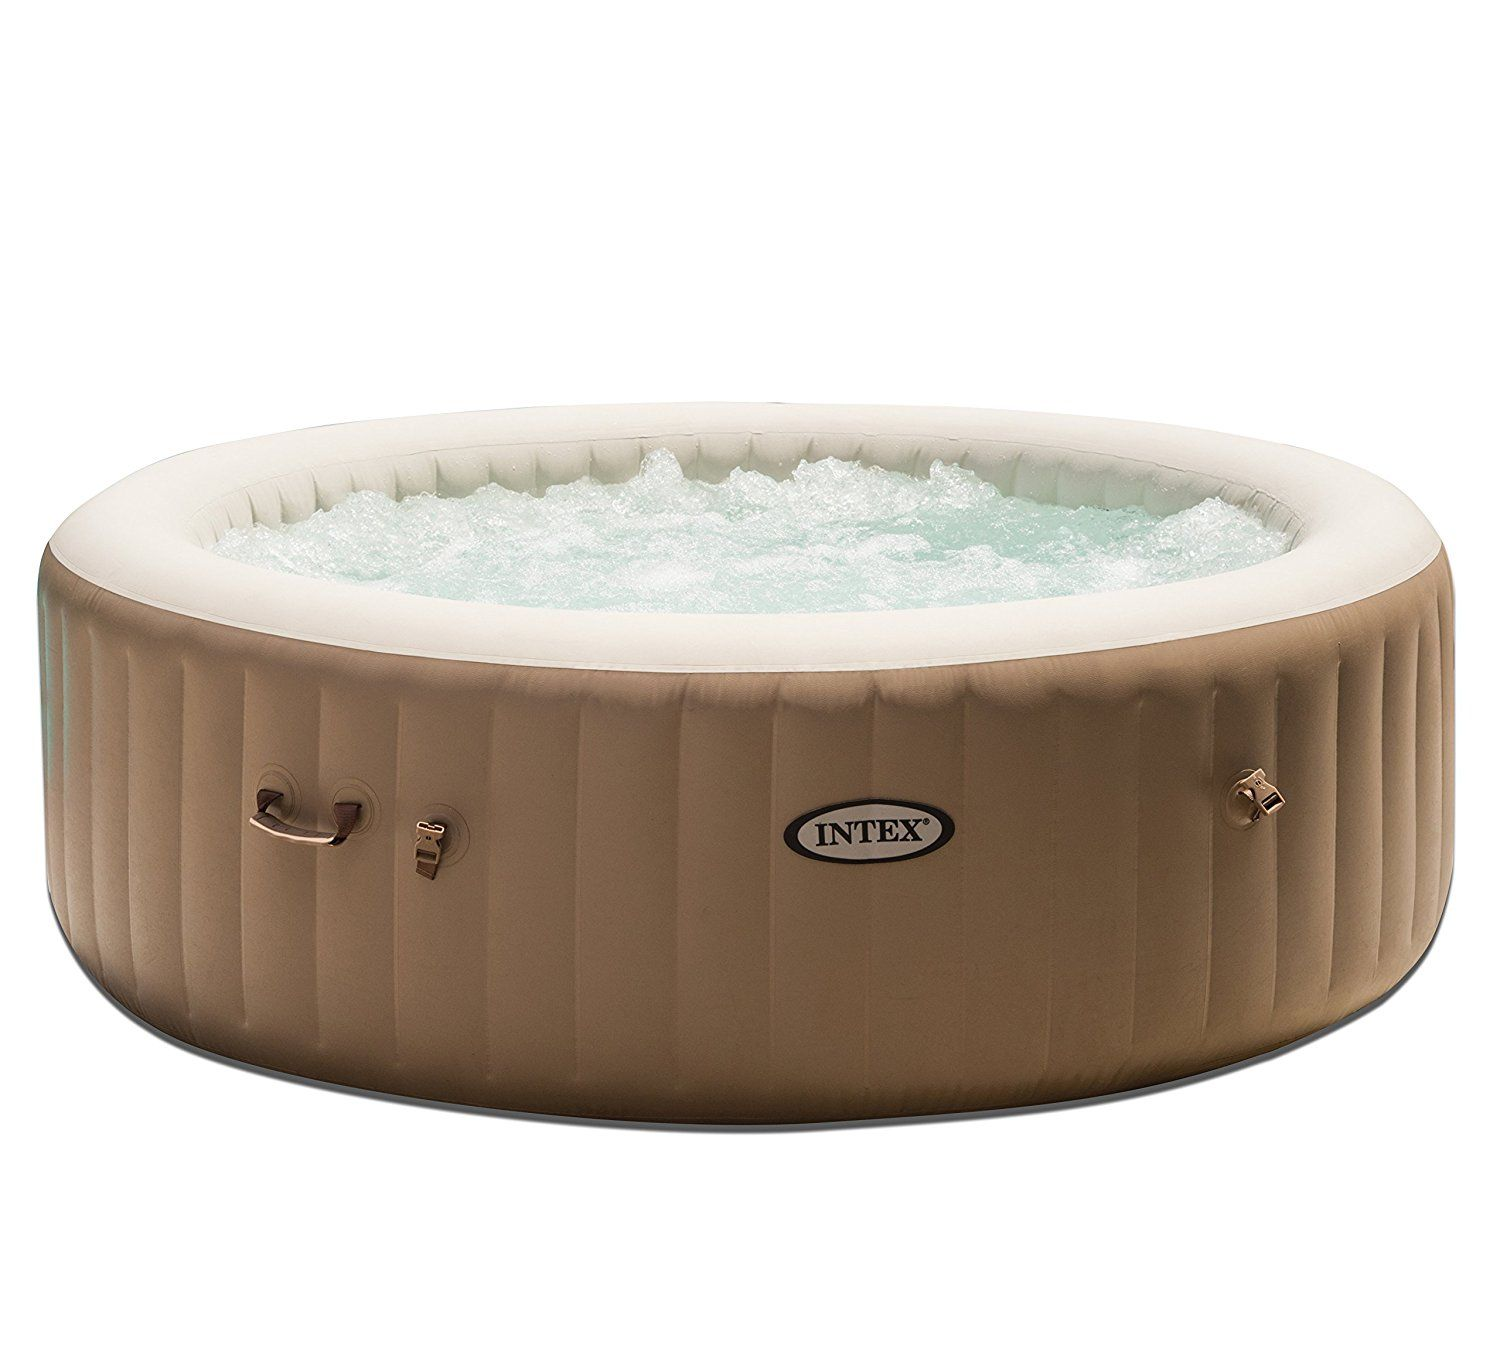 8. Top 10 Best Portable Hot Tubs reviews in 2017 | Top 10 Best ...